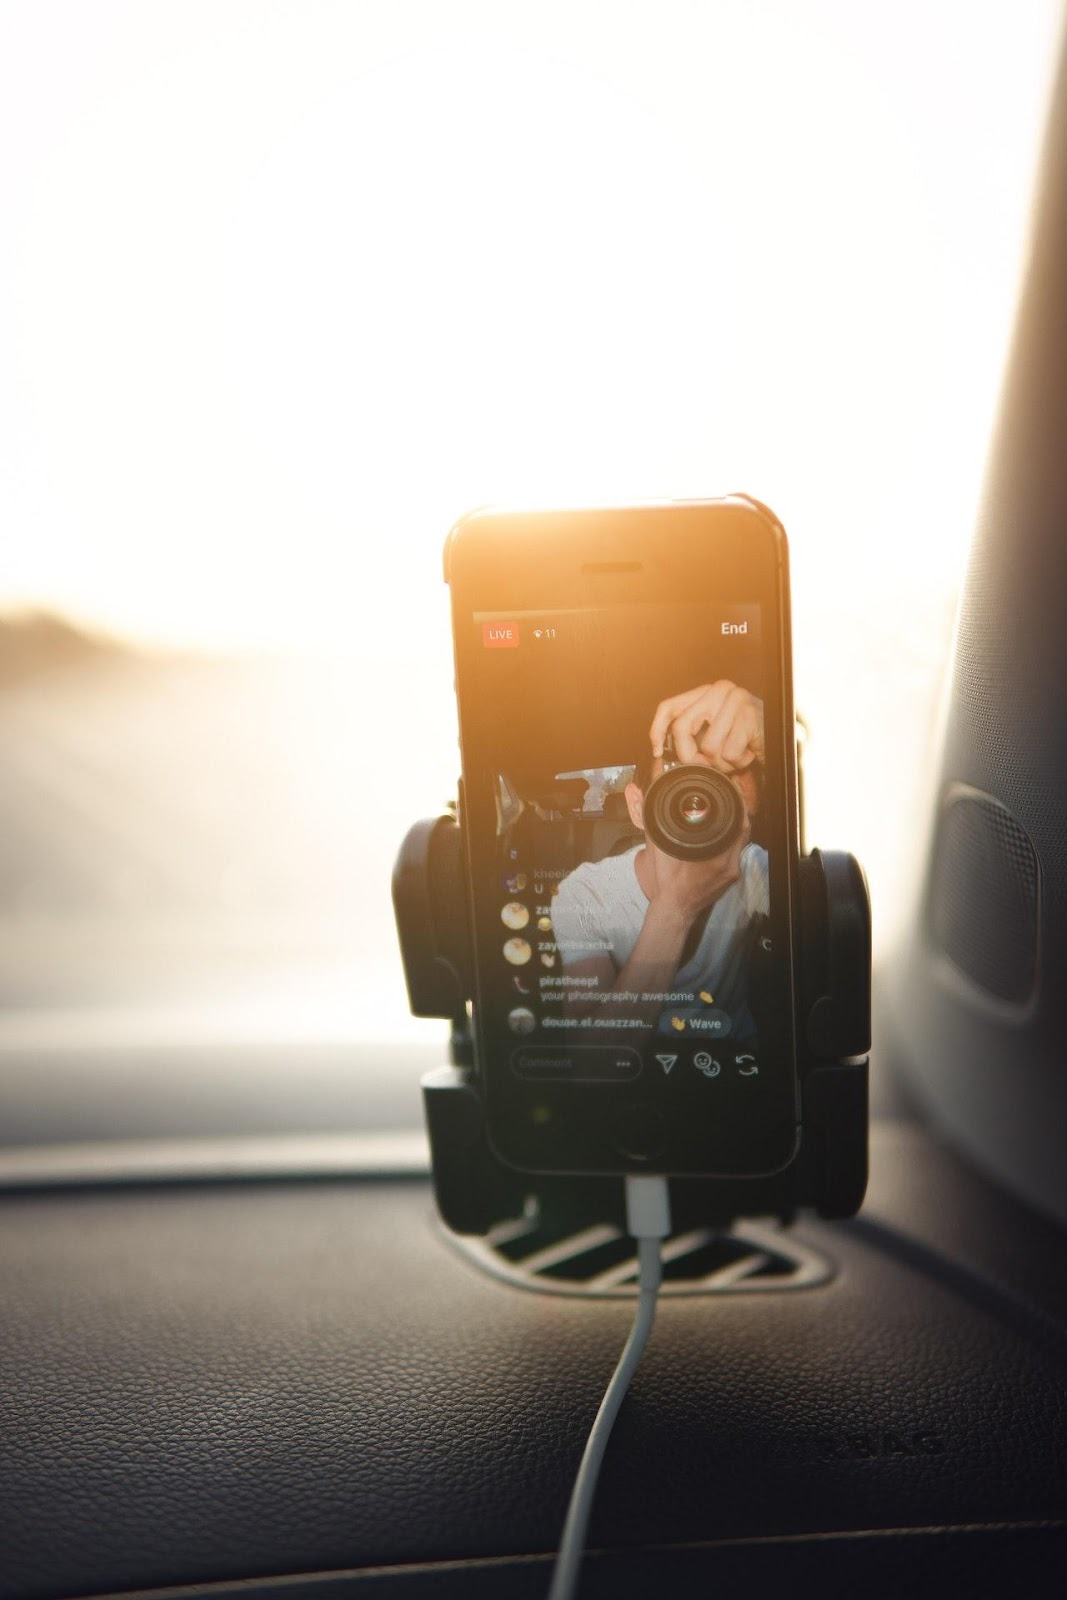 C:\Users\user\Downloads\photo-of-person-holding-black-camera-4668381.jpg